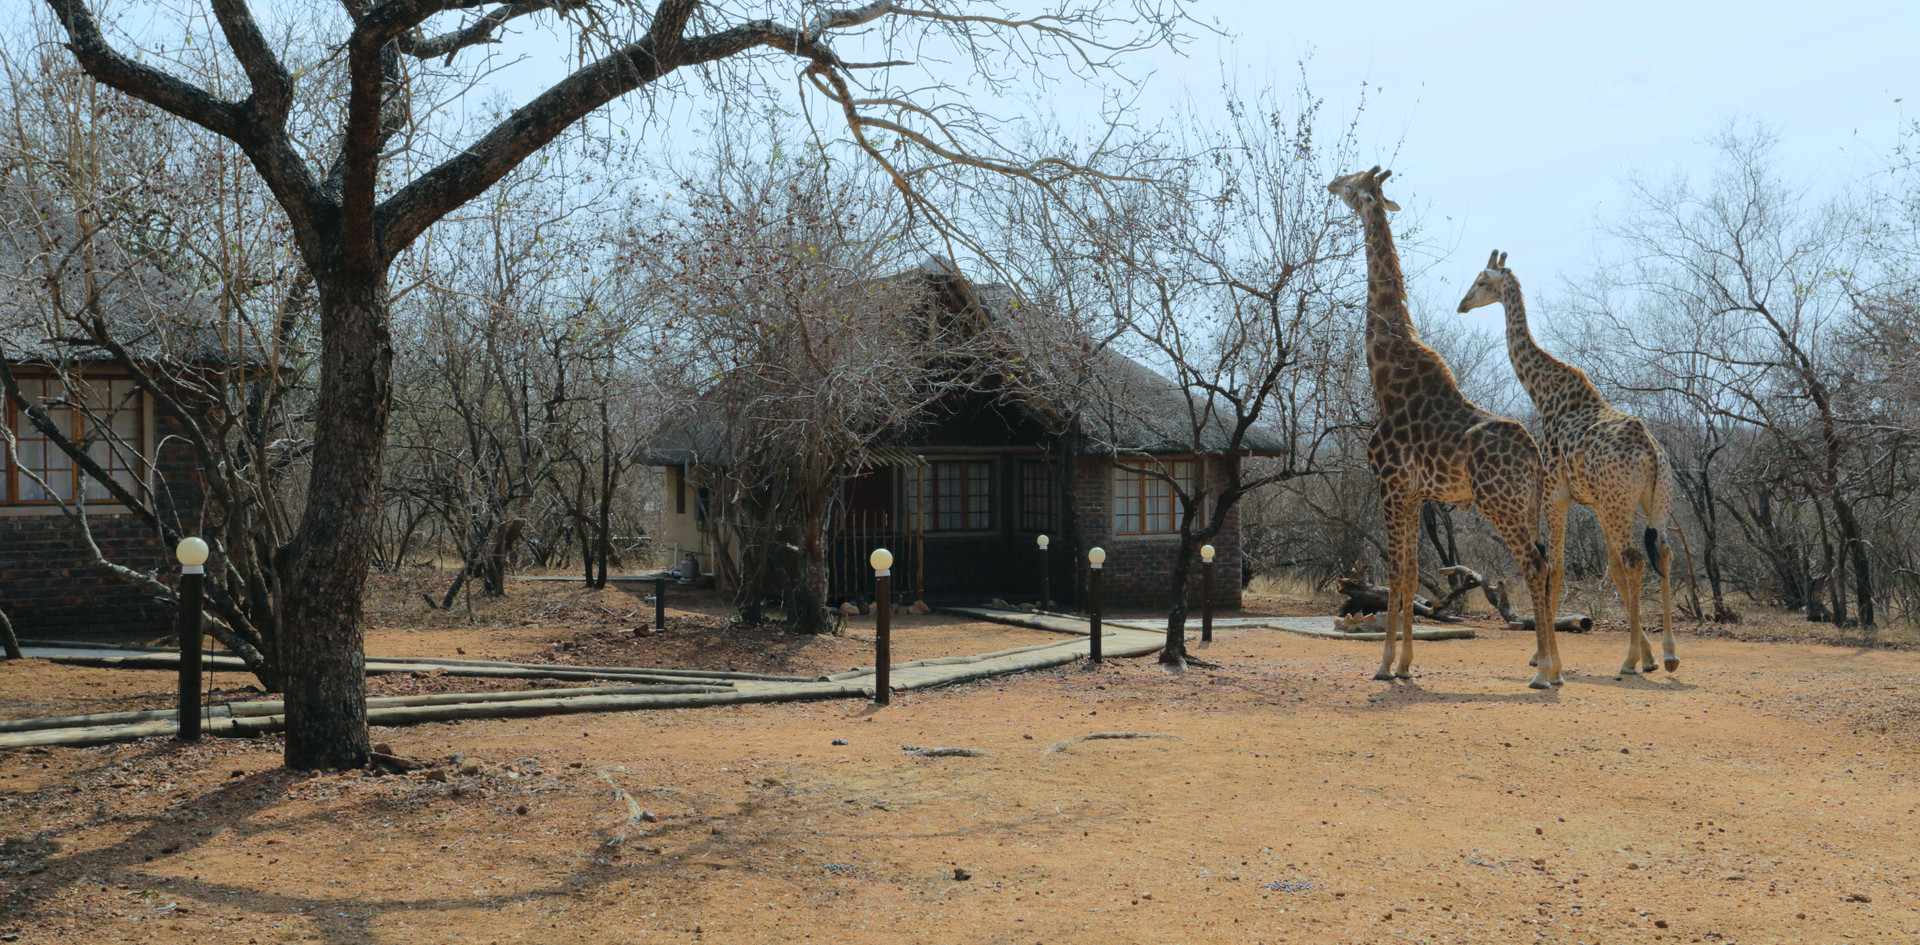 Tusk Bush Lodge Bungalow 3 Giraffes.jpg